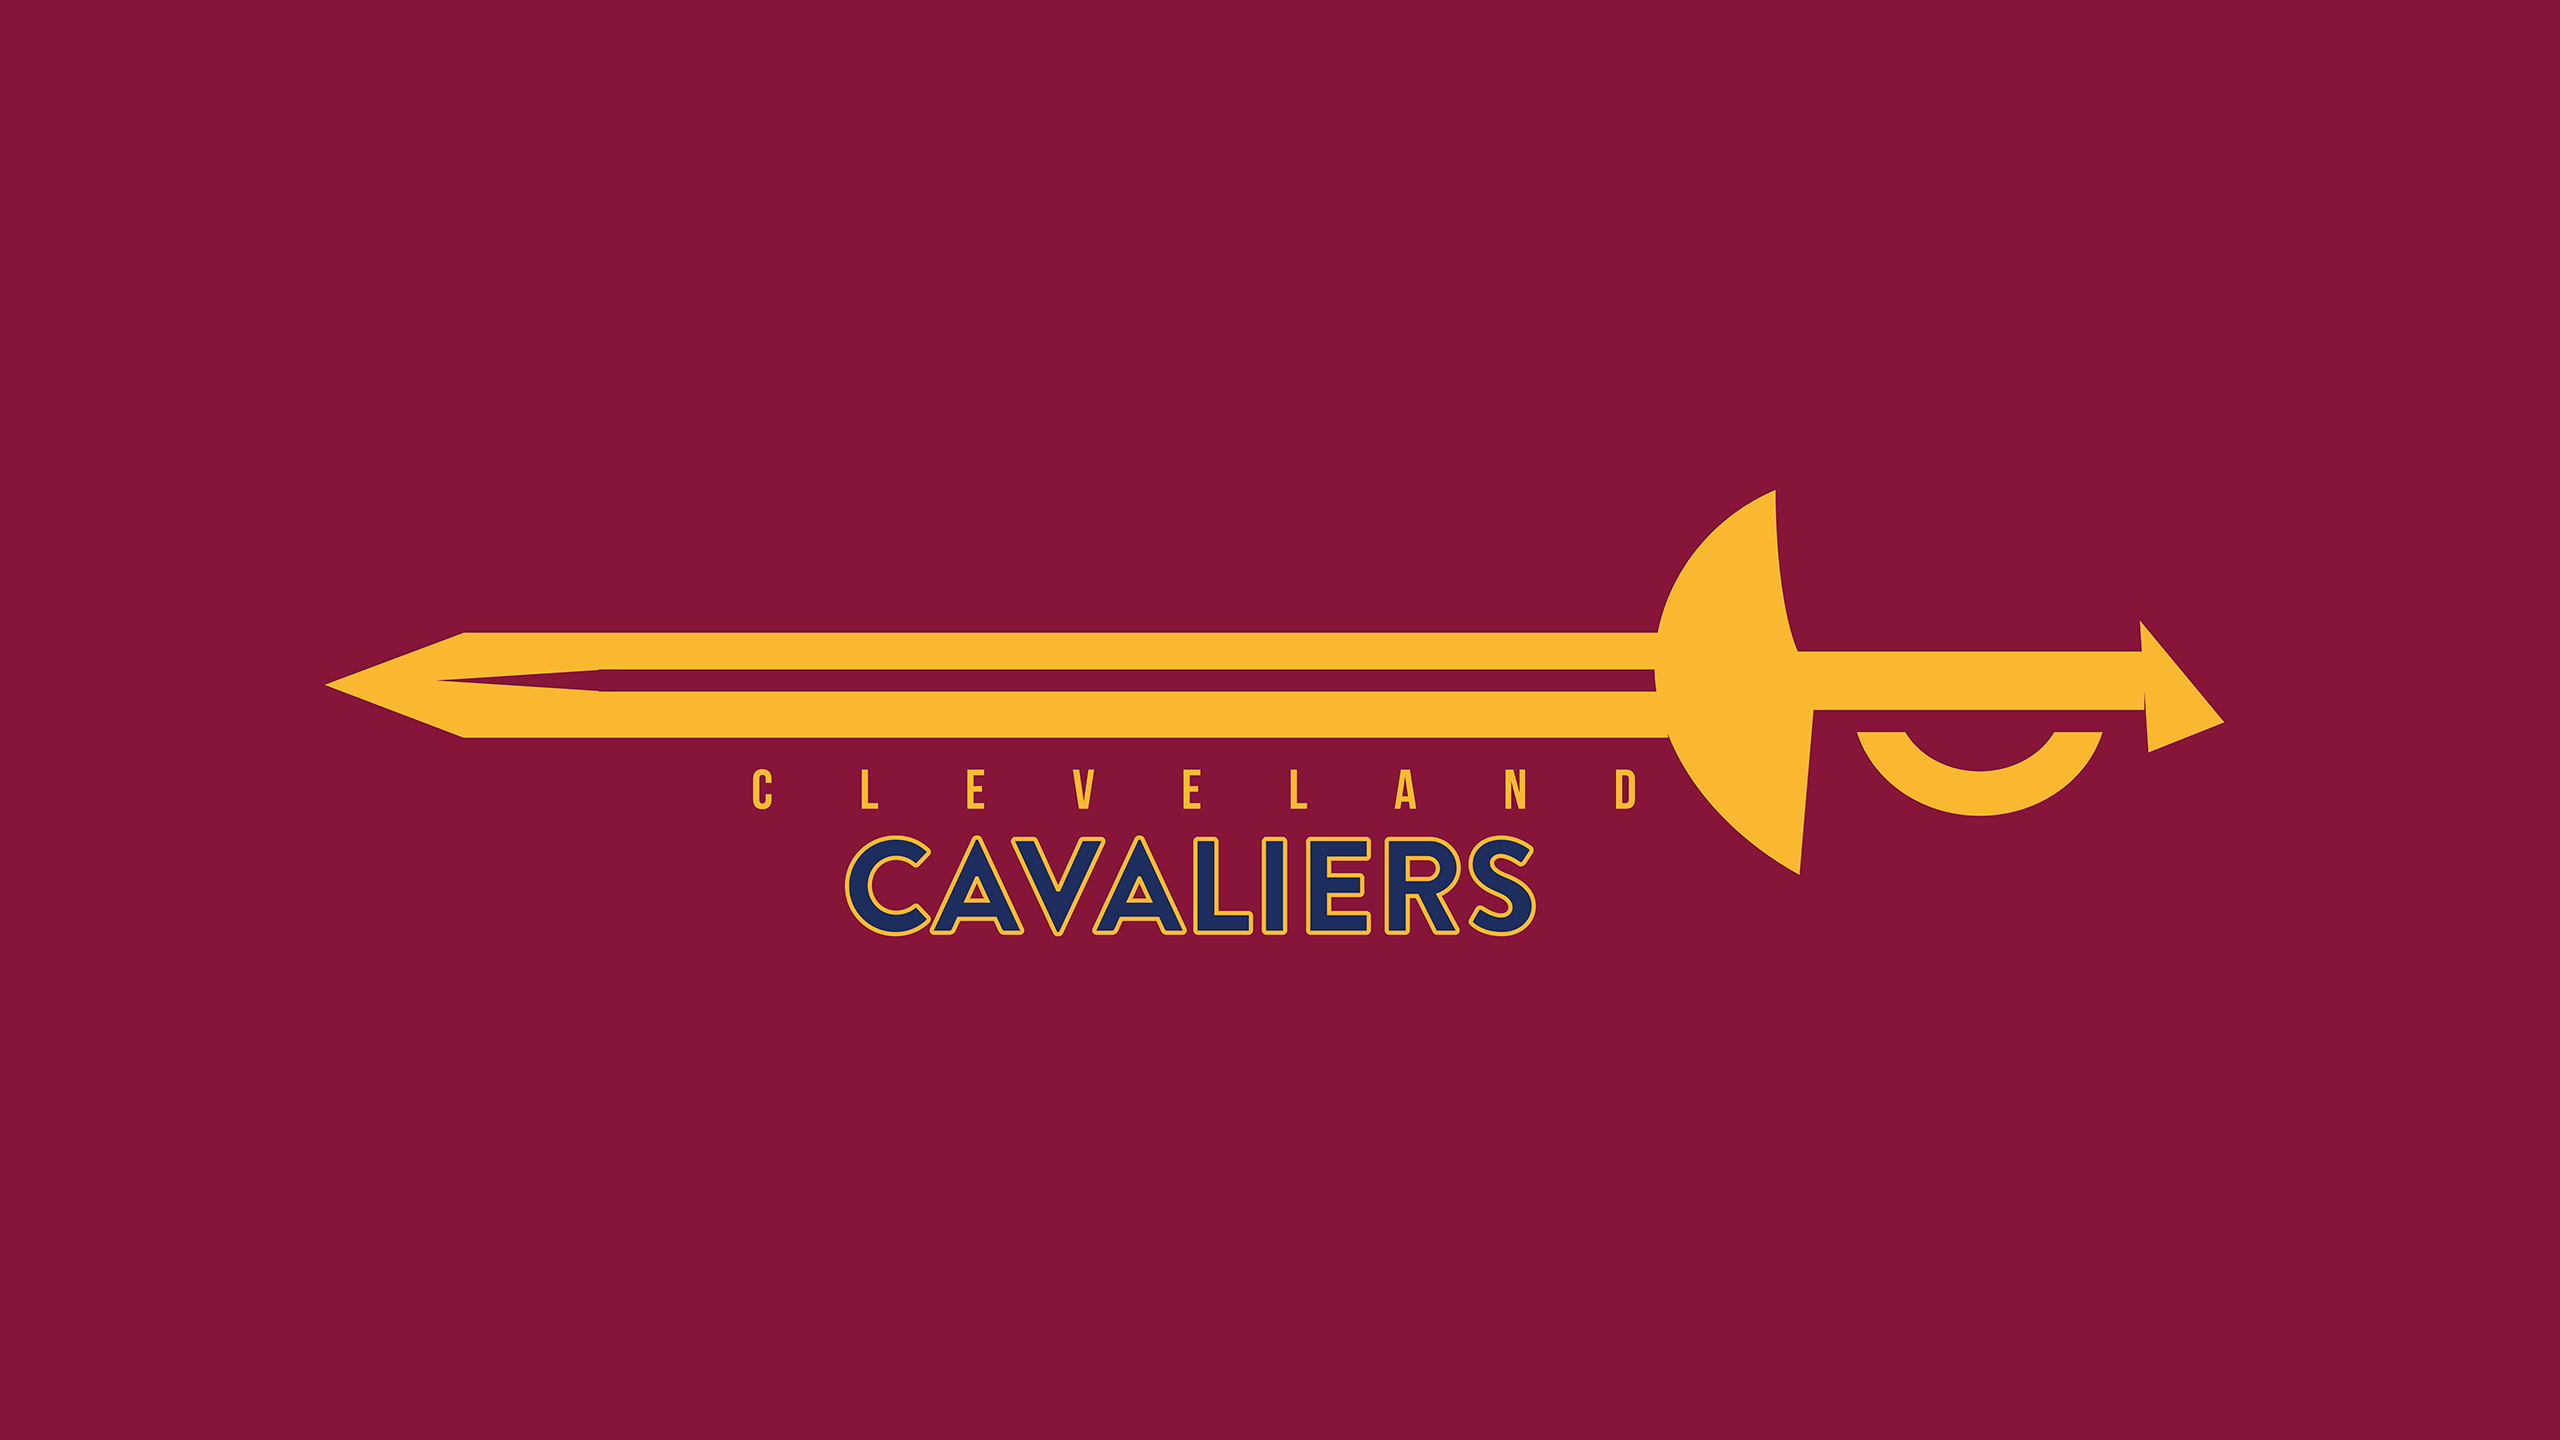 1000+ images about Cleveland Cavaliers on Pinterest | Cleveland